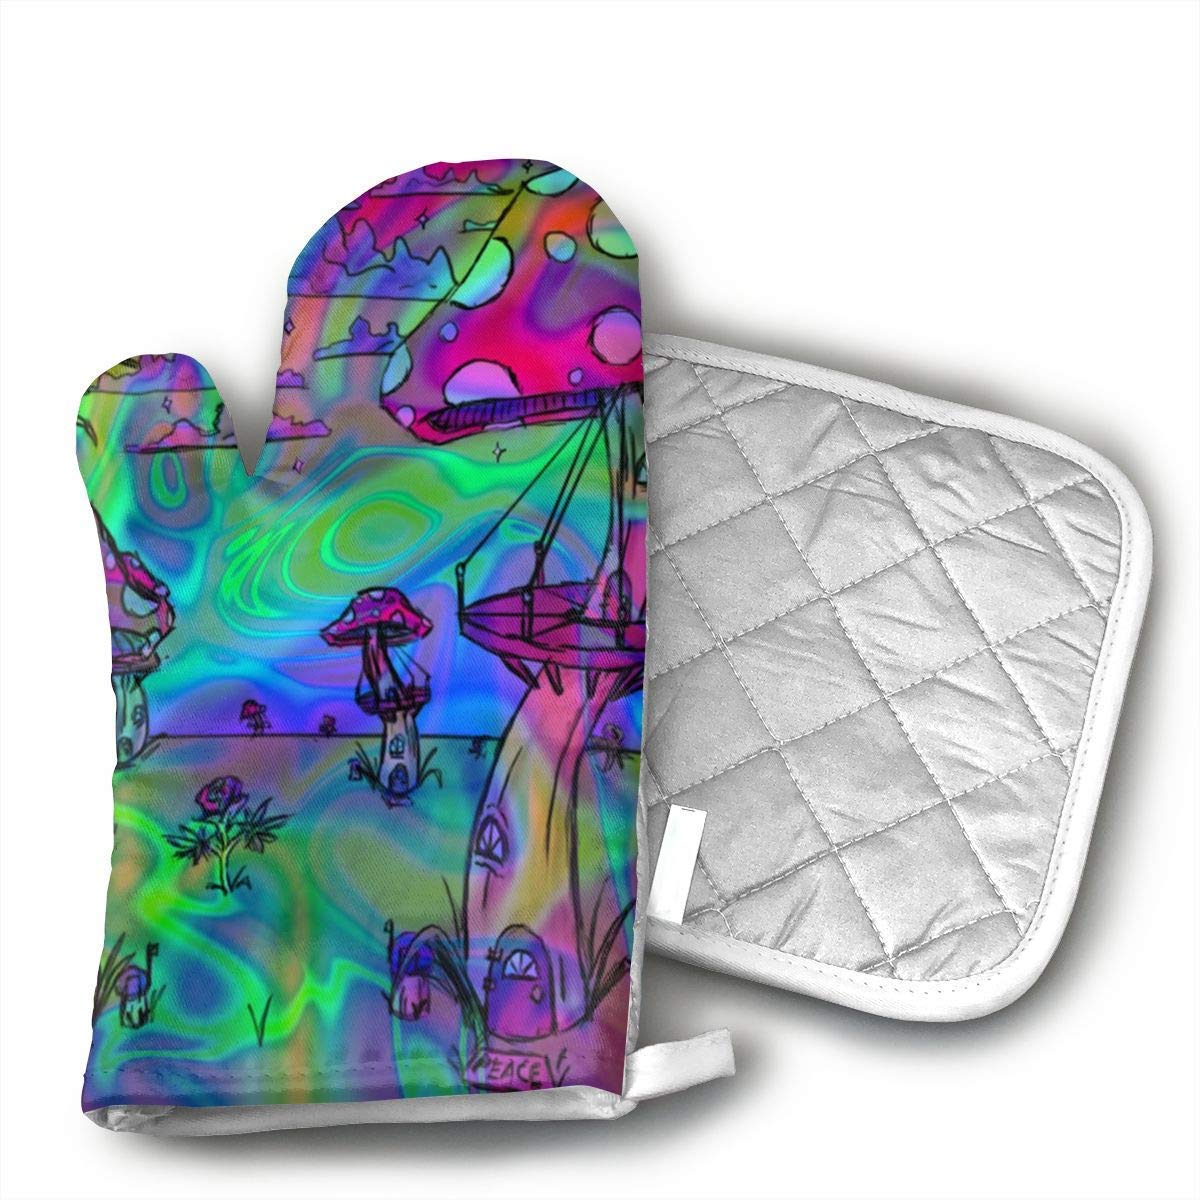 NoveltyGloves Psychedelic Trippy Wallpaper Kitchen Oven Mitts,Professional Heat Resistant Microwave BBQ Oven Insulation Thickening Cotton Gloves Baking Pot Mitts Soft Inner Lining Kitchen Cooking